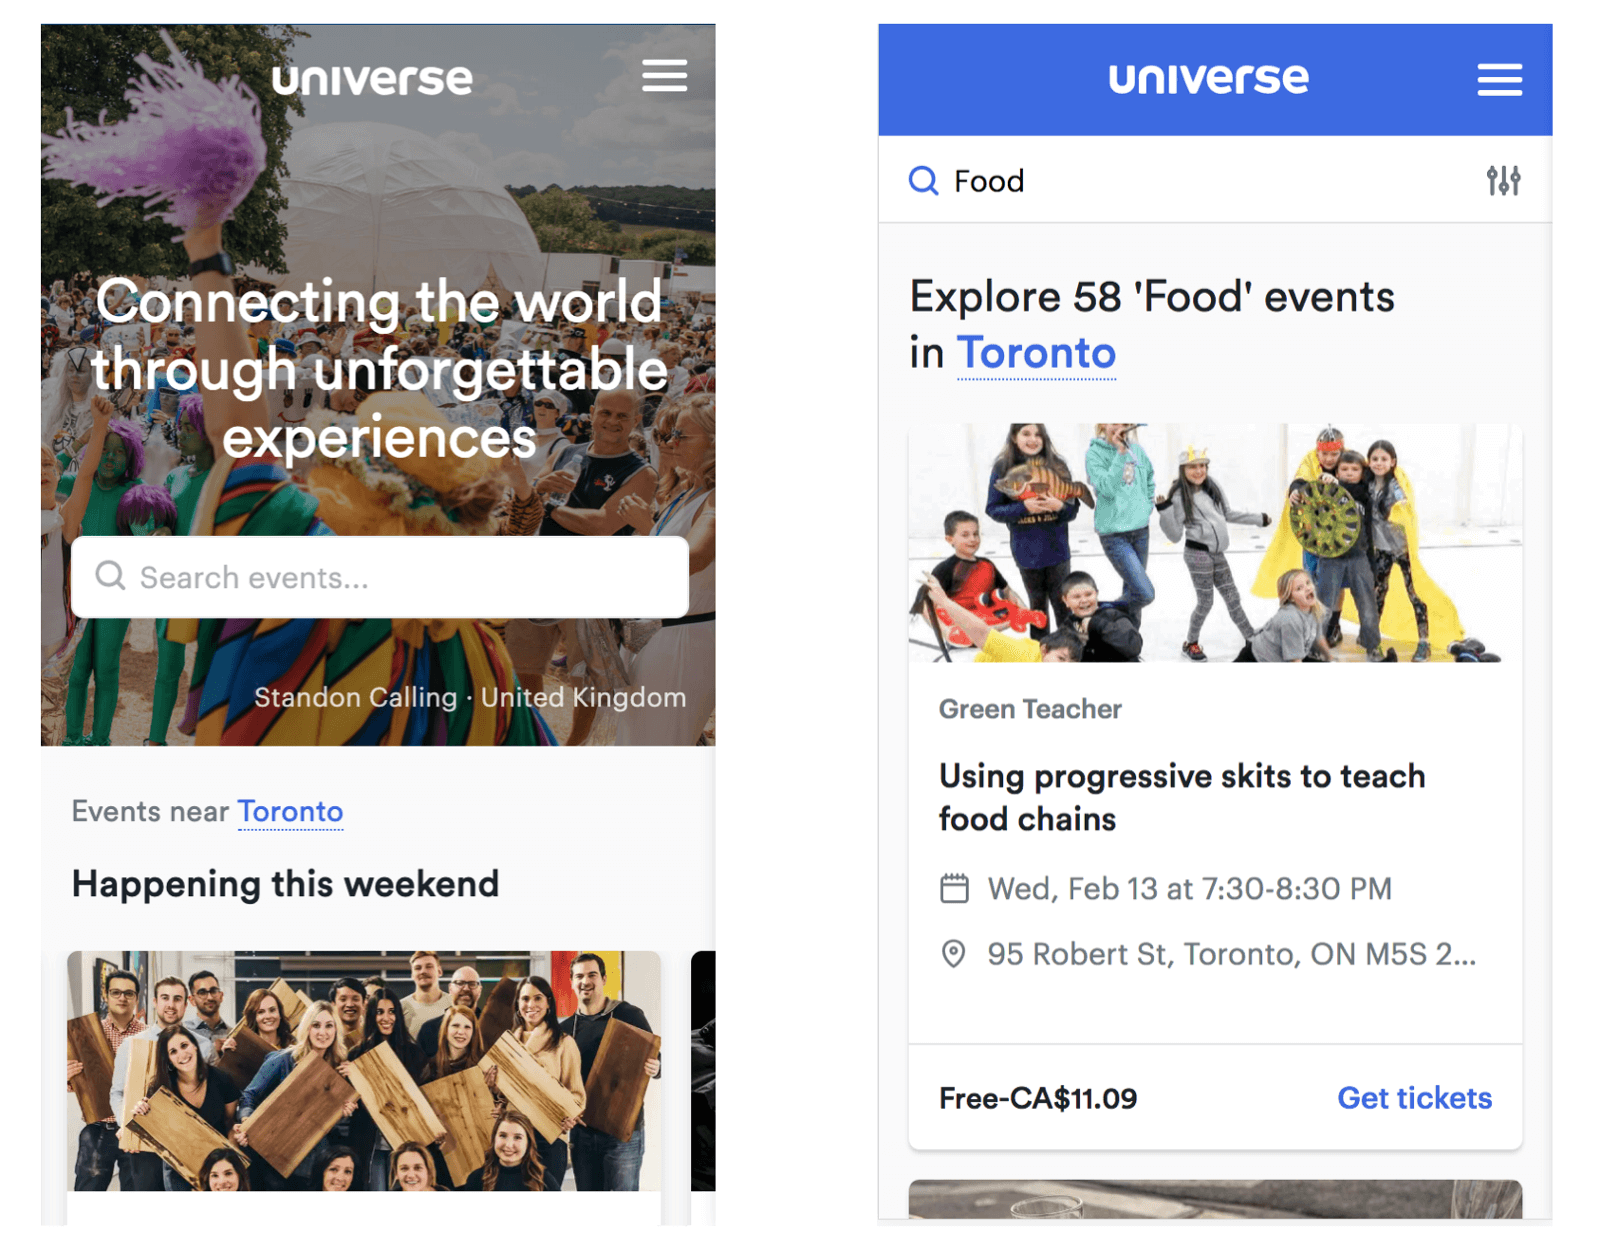 Universe homepage and explore